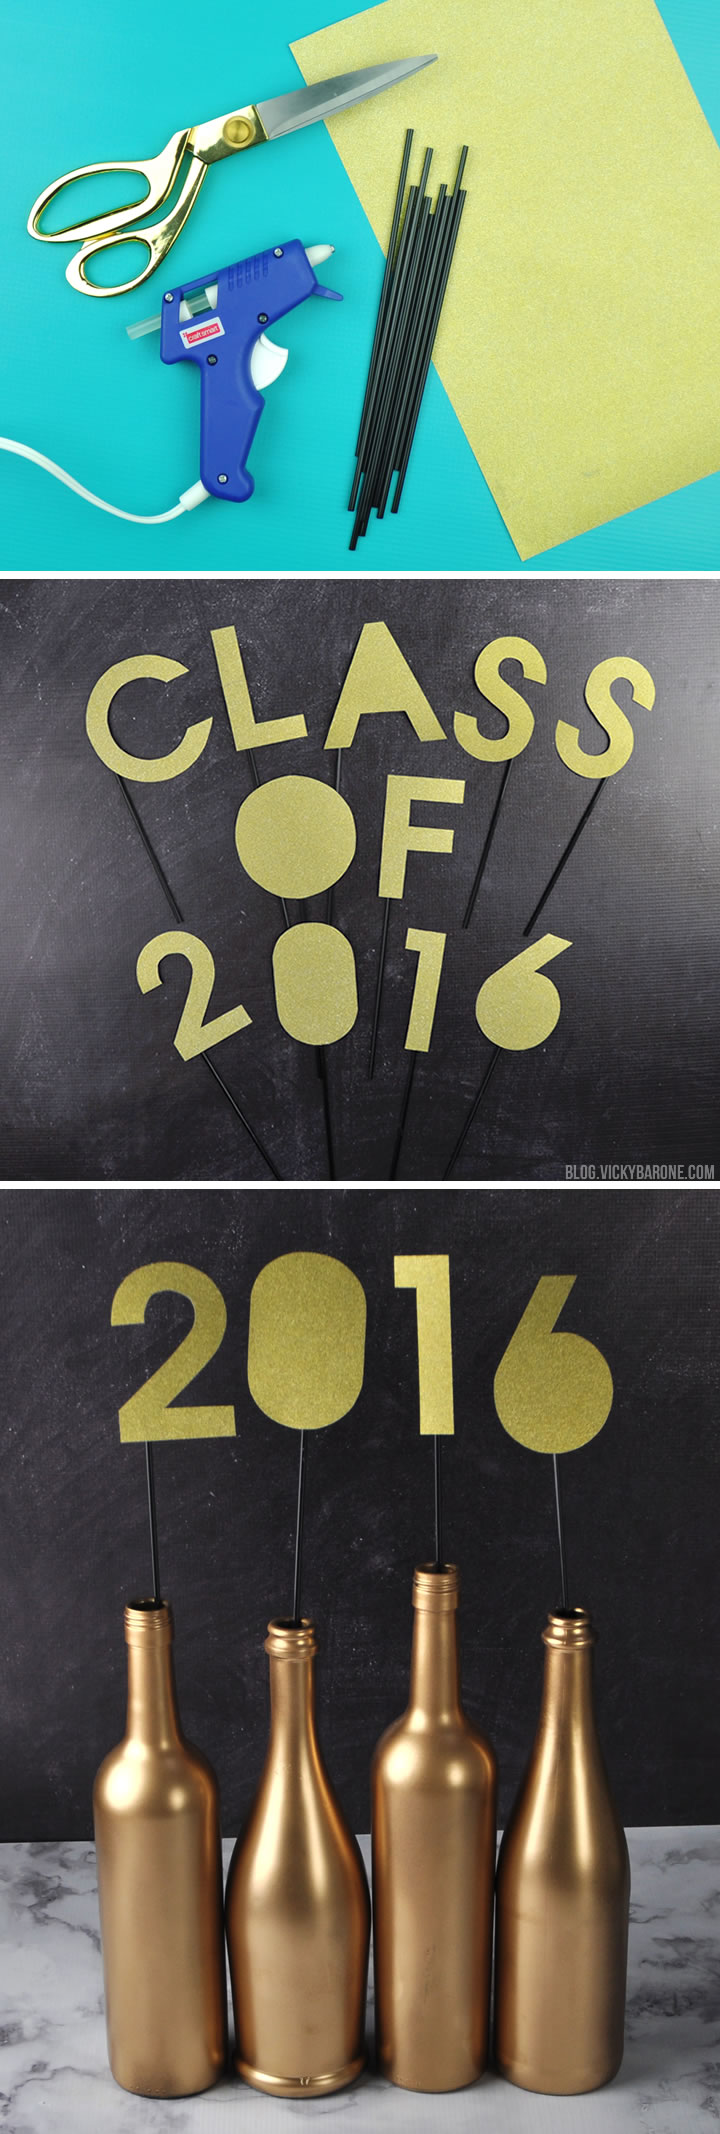 Class of 2016 Graduation Party Centerpiece | Vicky Barone